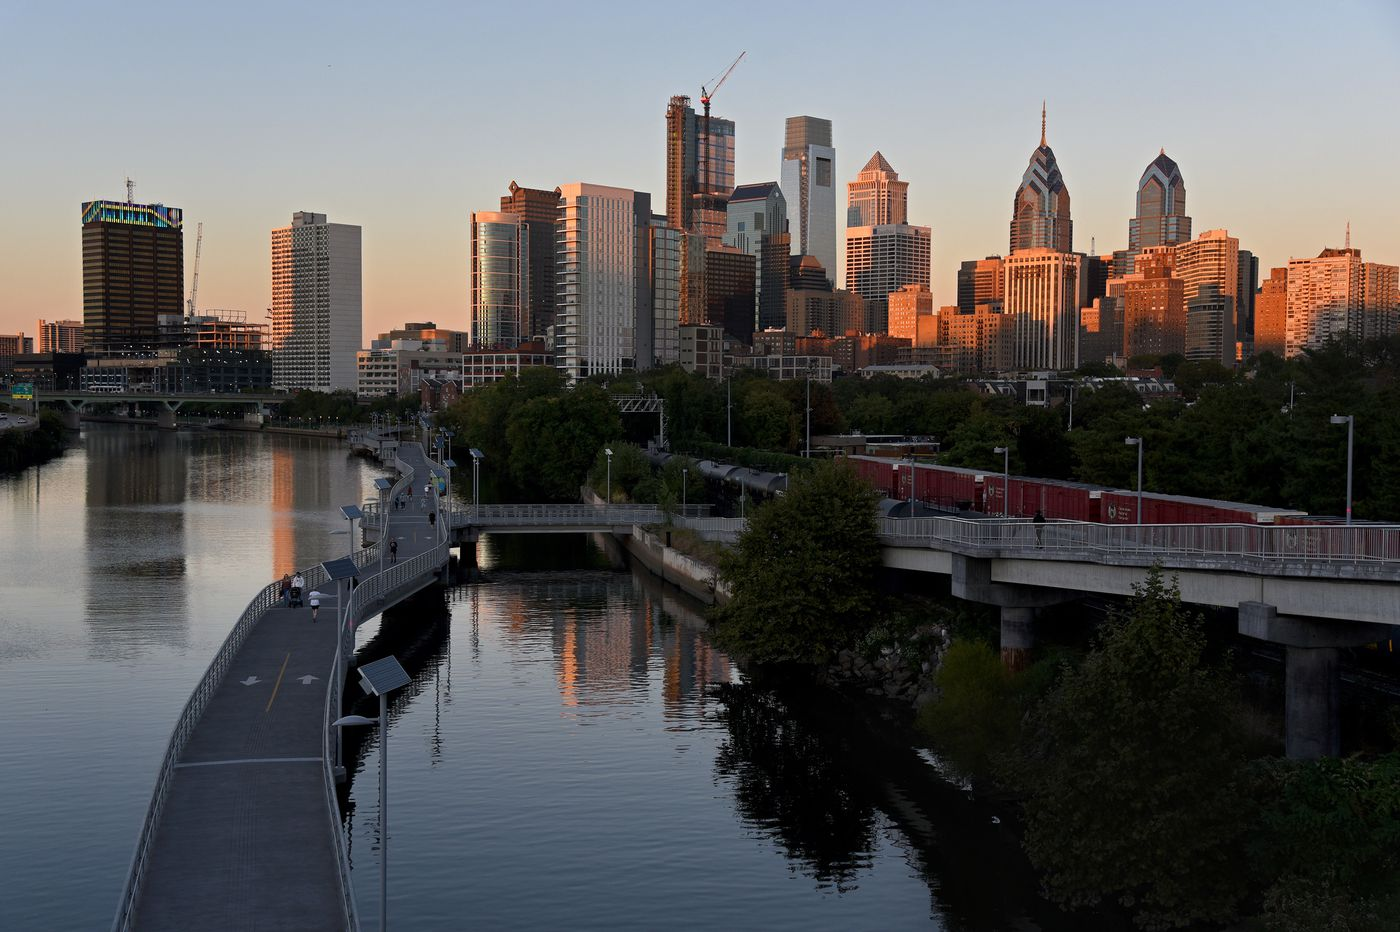 Losing Amazon HQ2 underscores where Philly falls short | Opinion